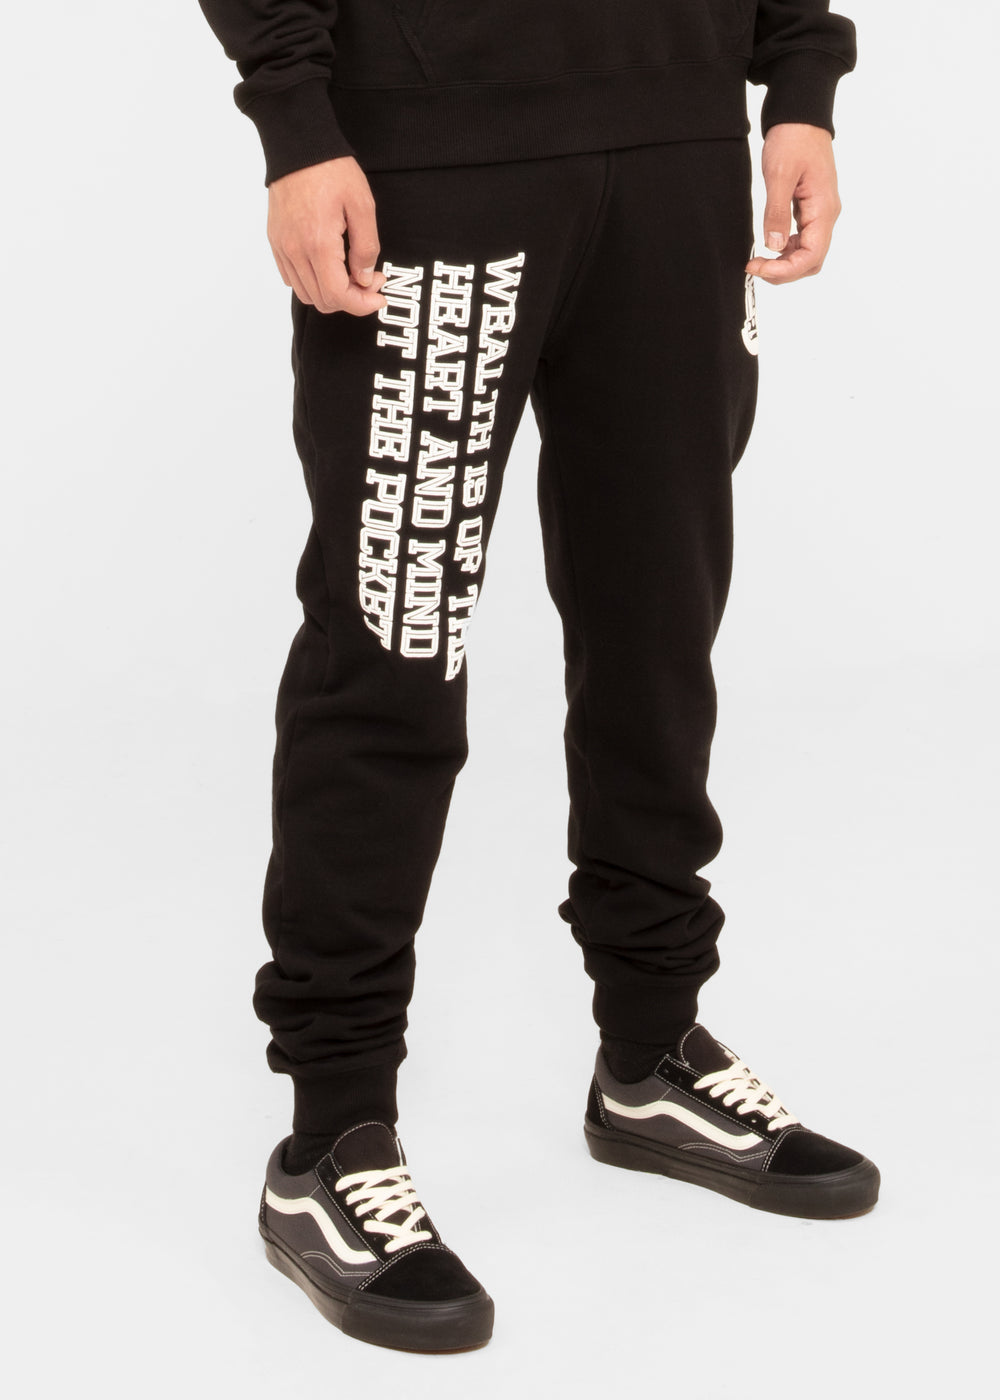 billionaire-boys-club-wealth-jogger-891-7102-blk-blk-2